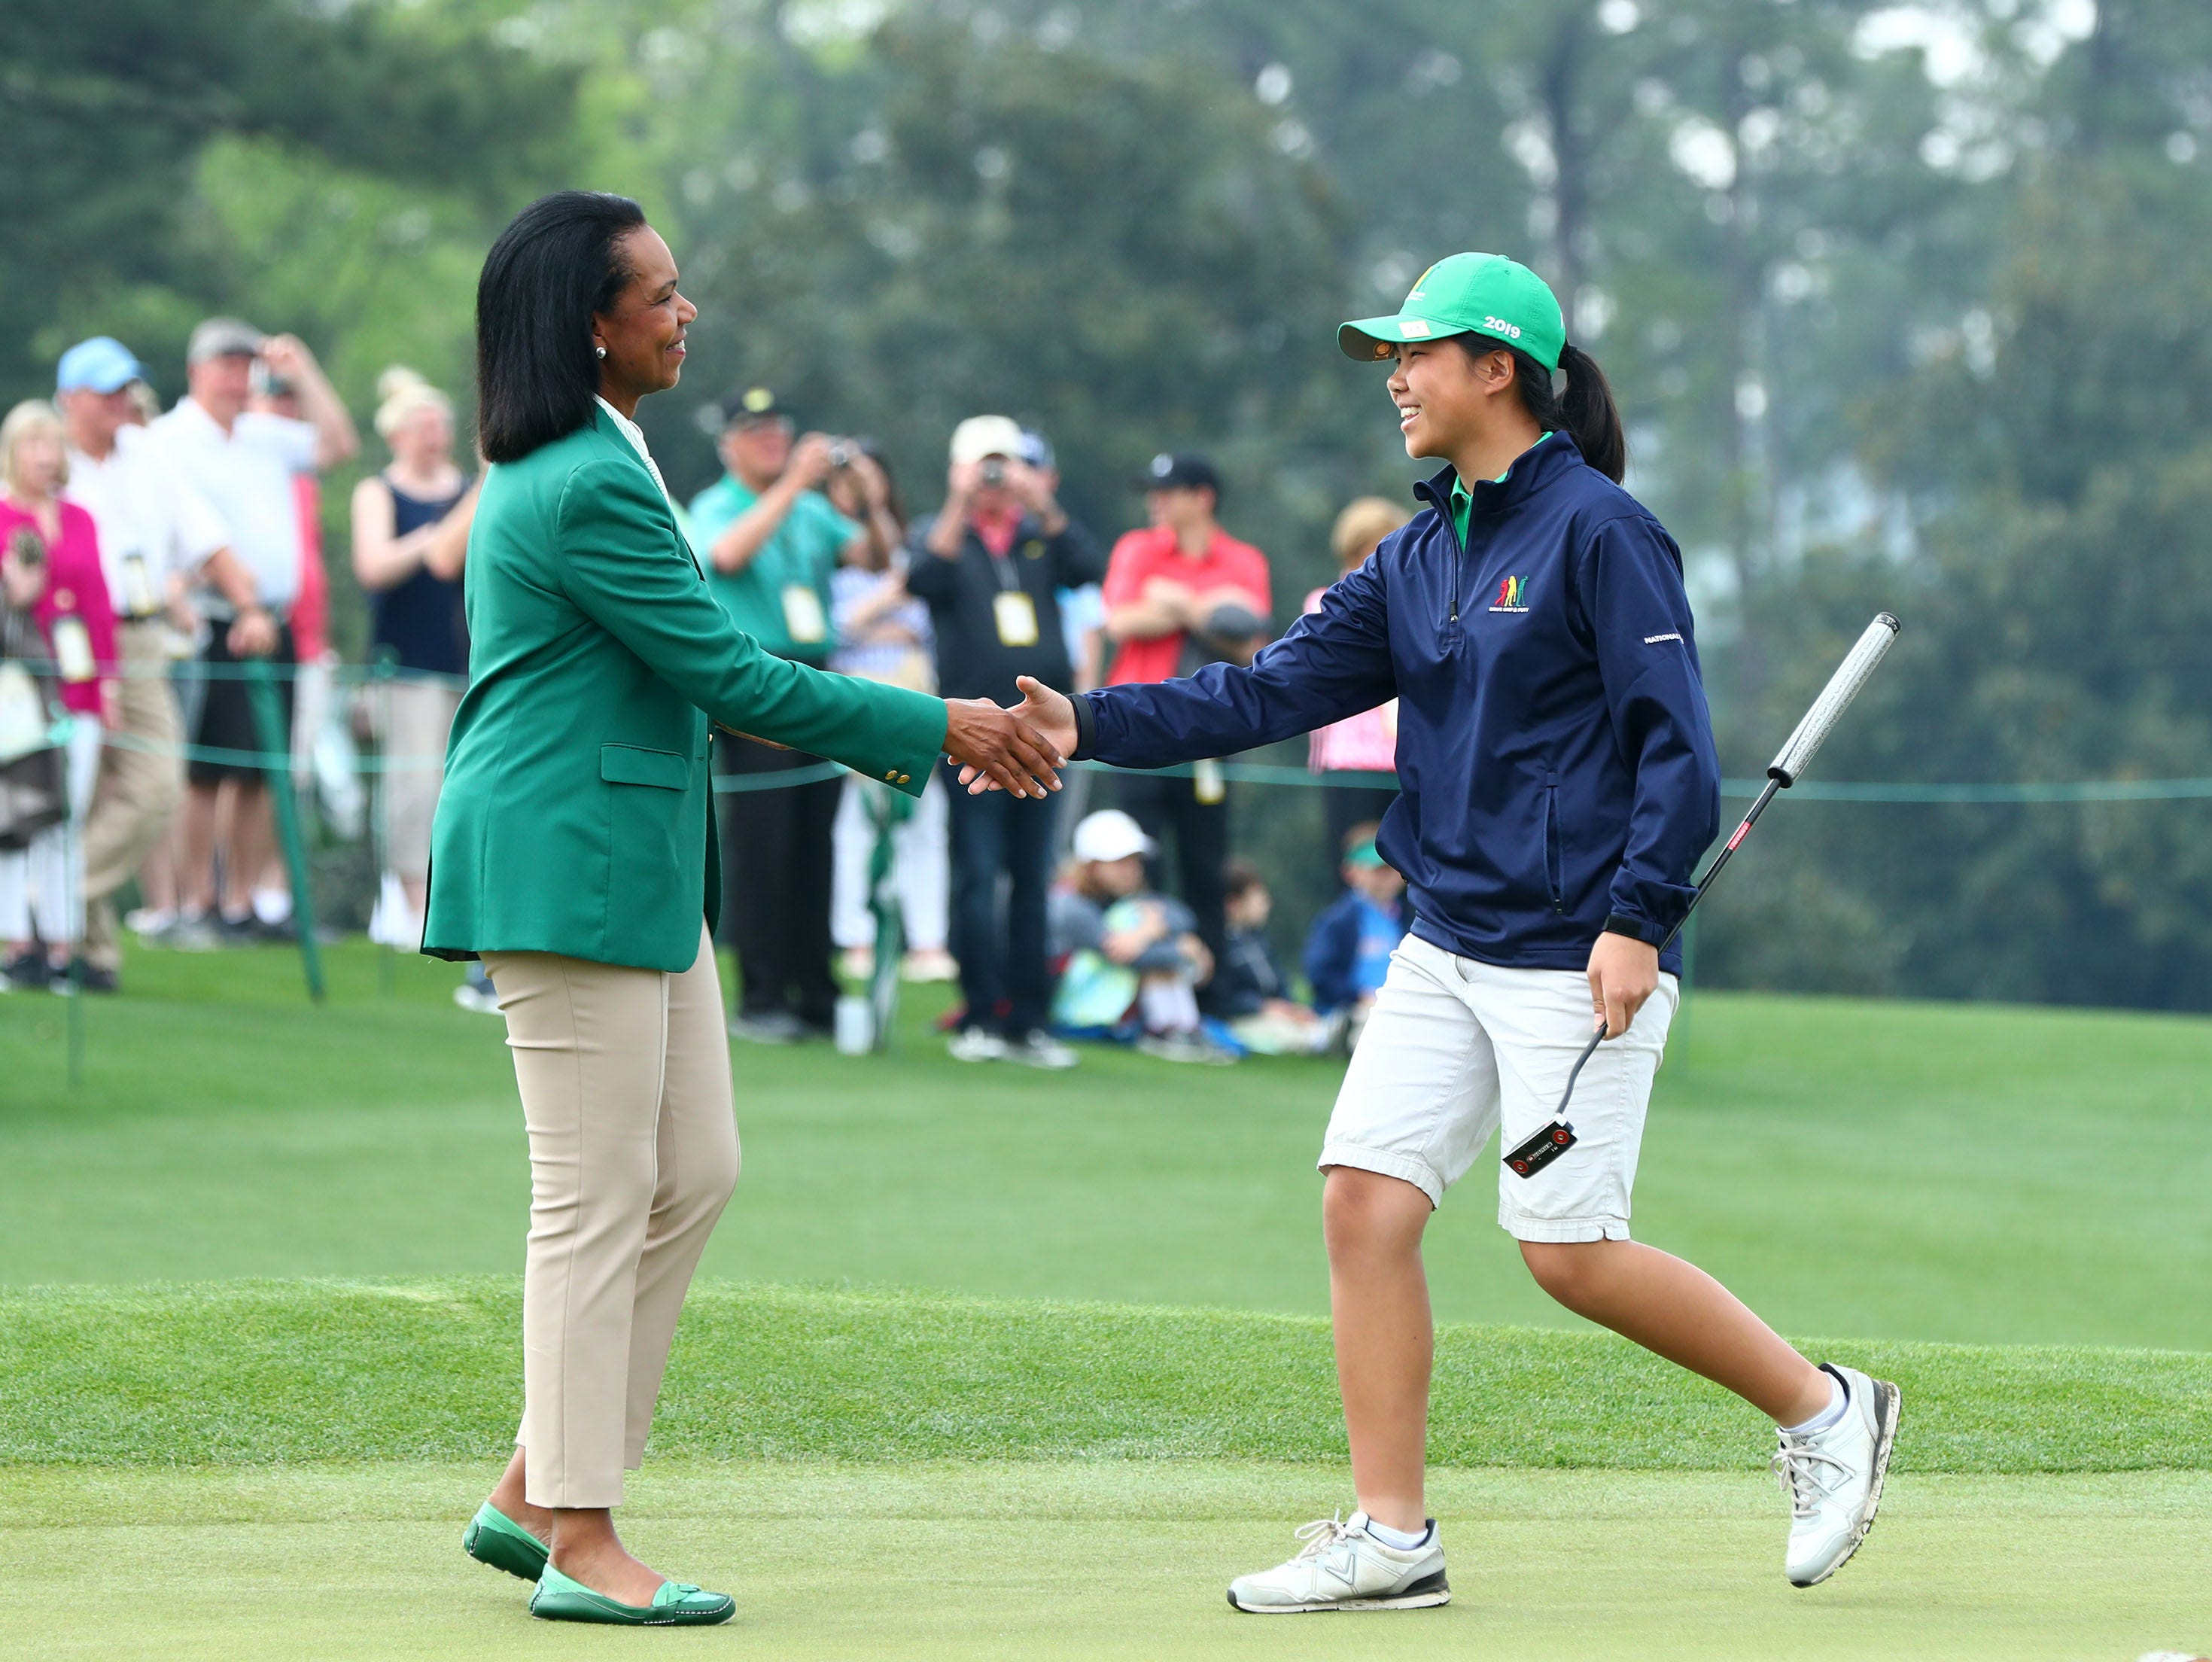 Augusta National member and former Secretary of State Condoleezza Rice congratulates overall champion Sophia Li of Fresh Meadows, N.Y. for the girls 10-11 age group during the finals of the Drive, Chip and Putt competition at Augusta National Golf Club.